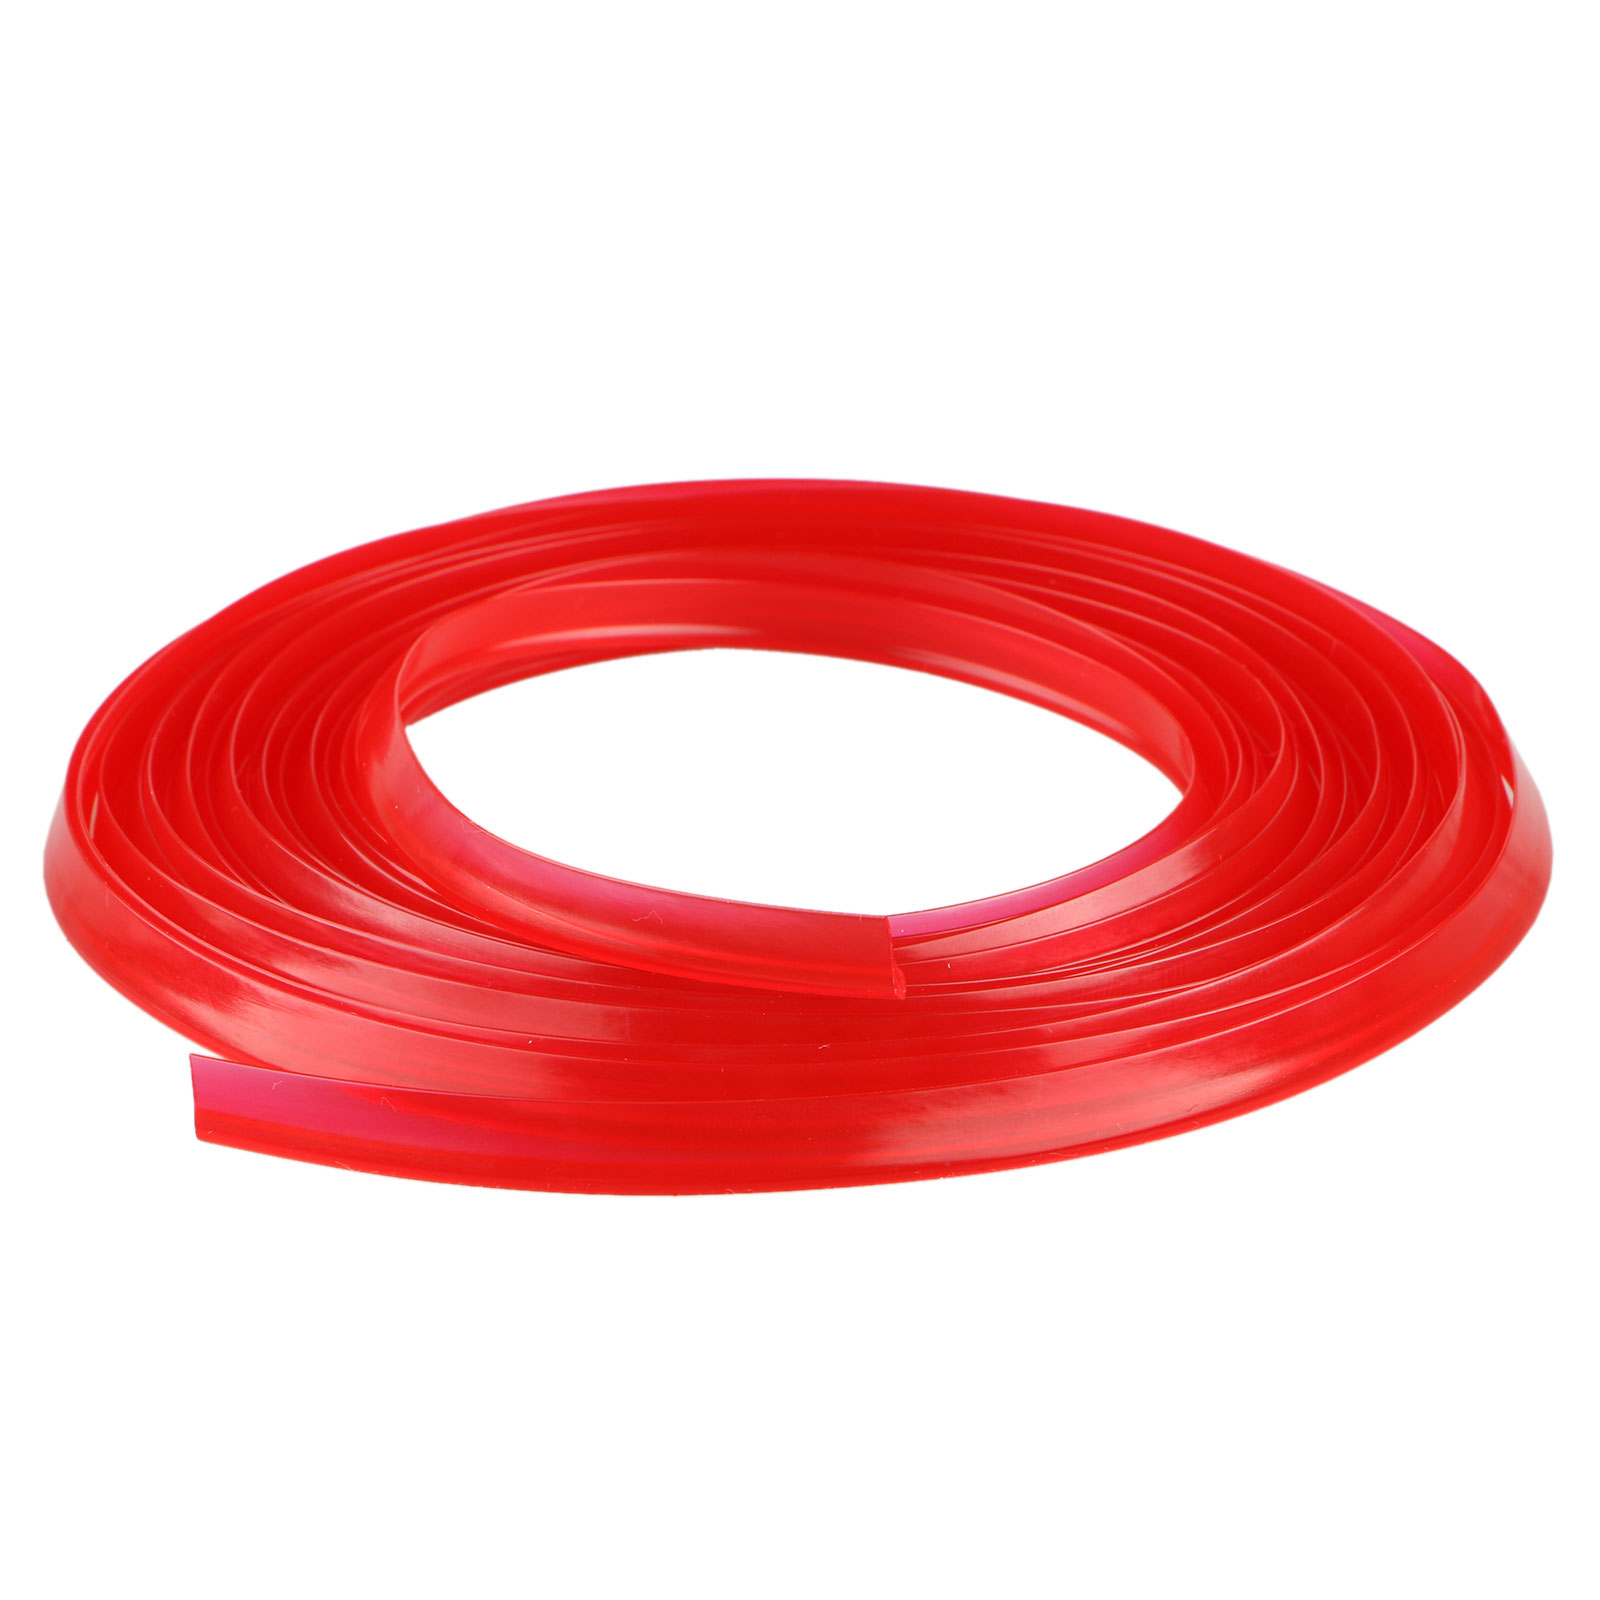 5M Door Gap Trim Molding Moulding Line Edge Strip Red For Car Interior Accessory